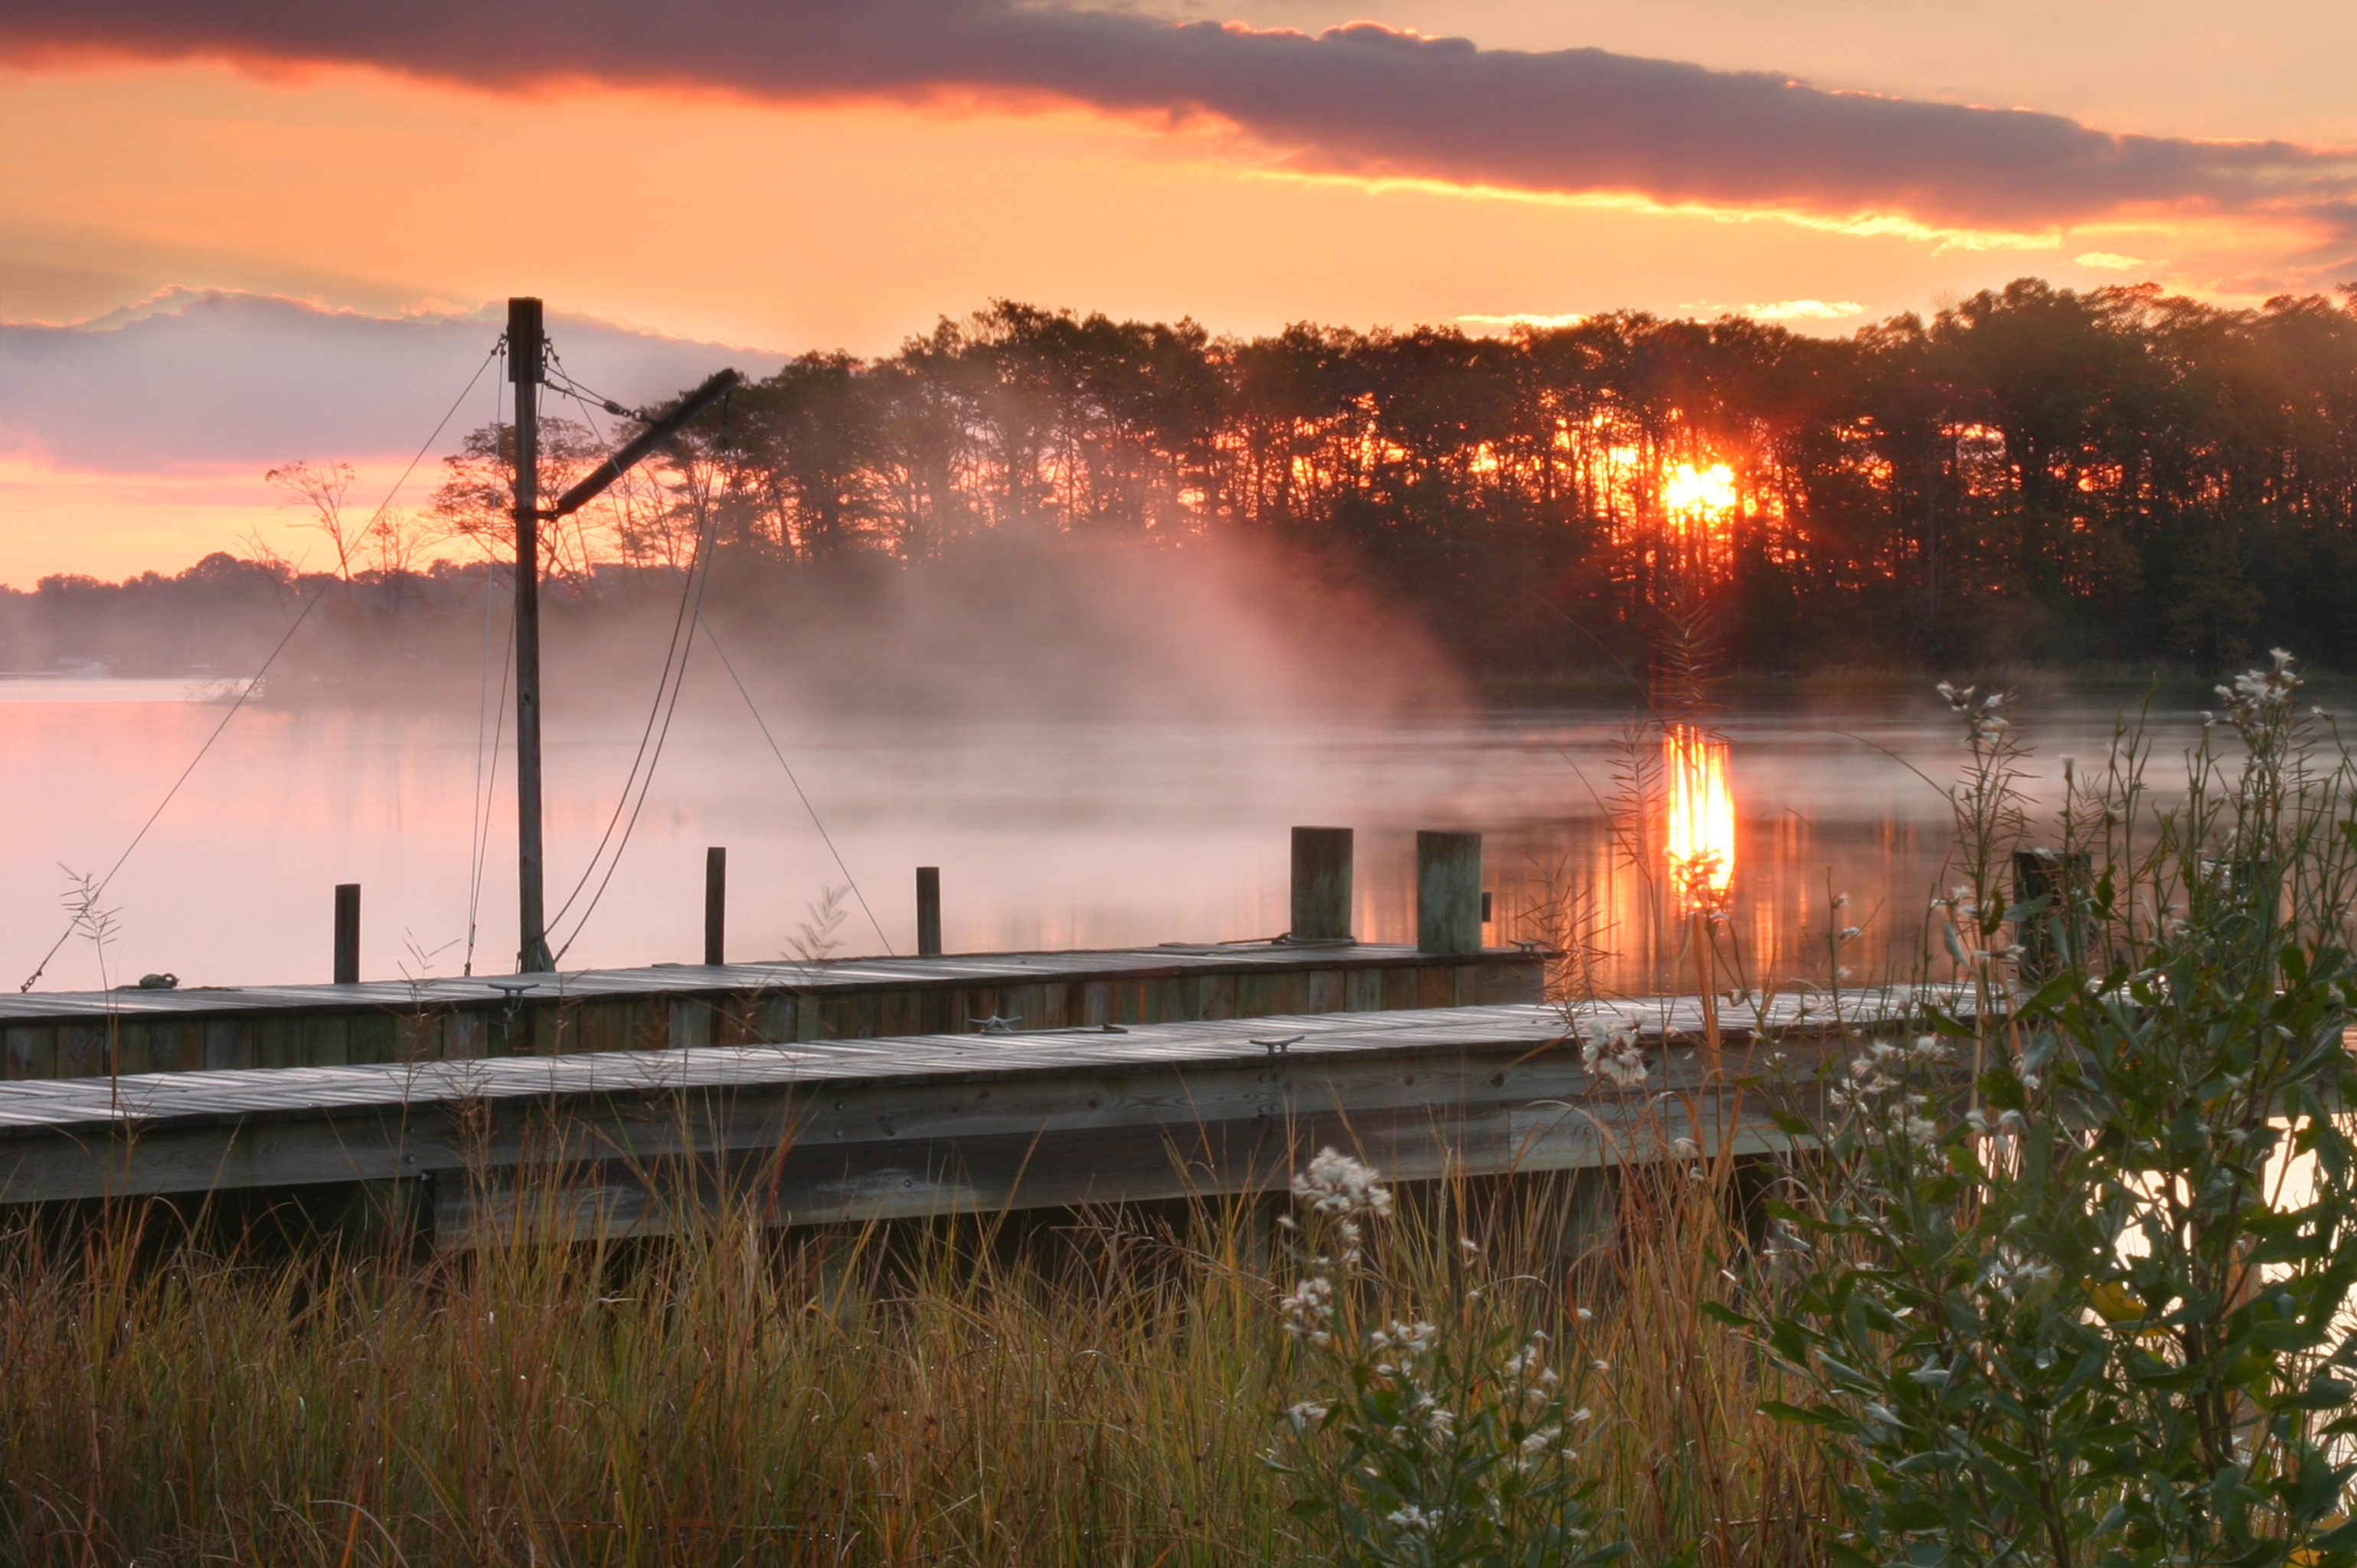 mist rising on river at sunrise